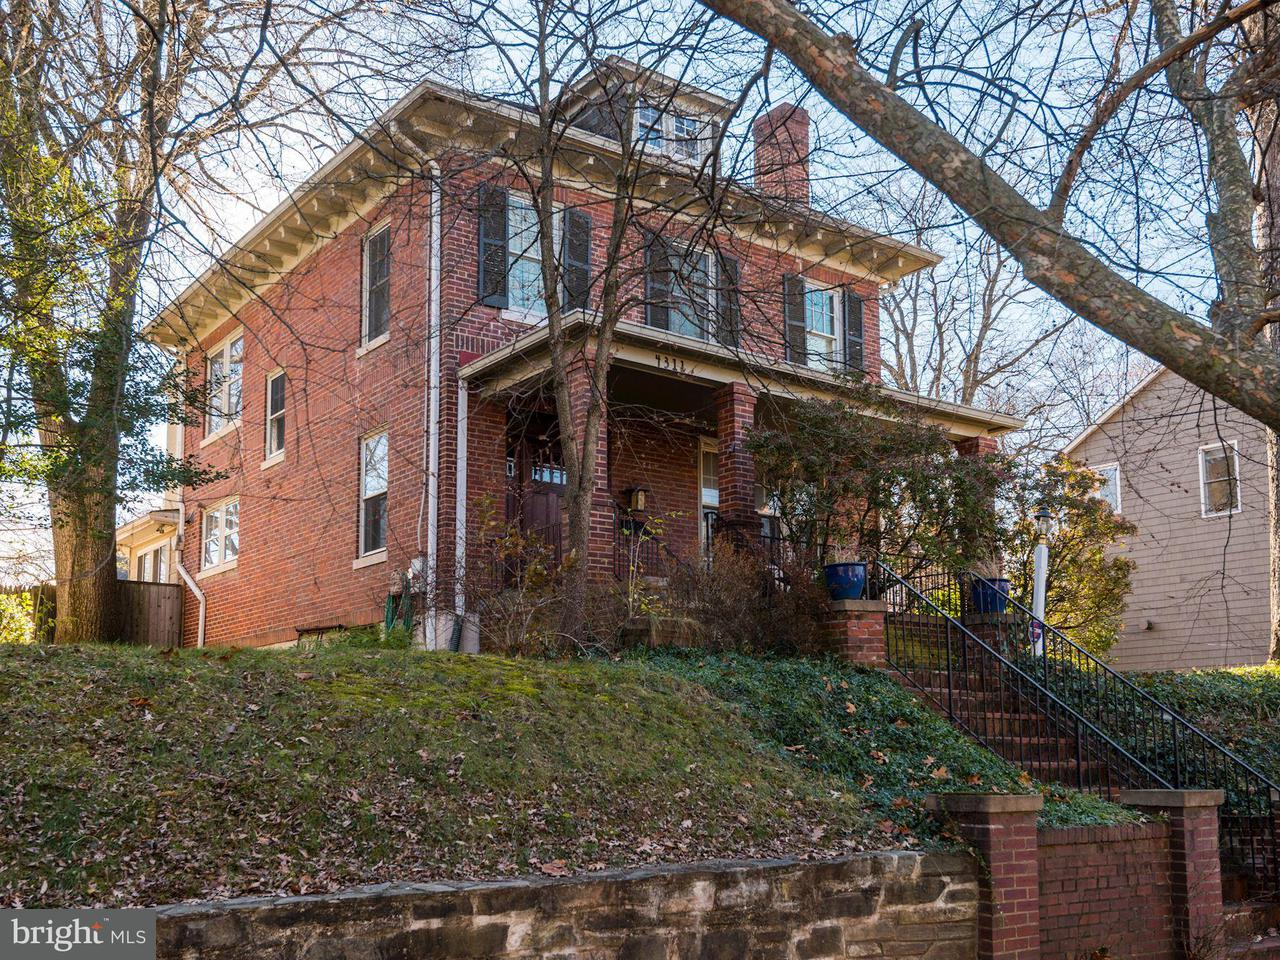 Single Family Home for Sale at 4311 Argyle Ter Nw 4311 Argyle Ter Nw Washington, District Of Columbia 20011 United States